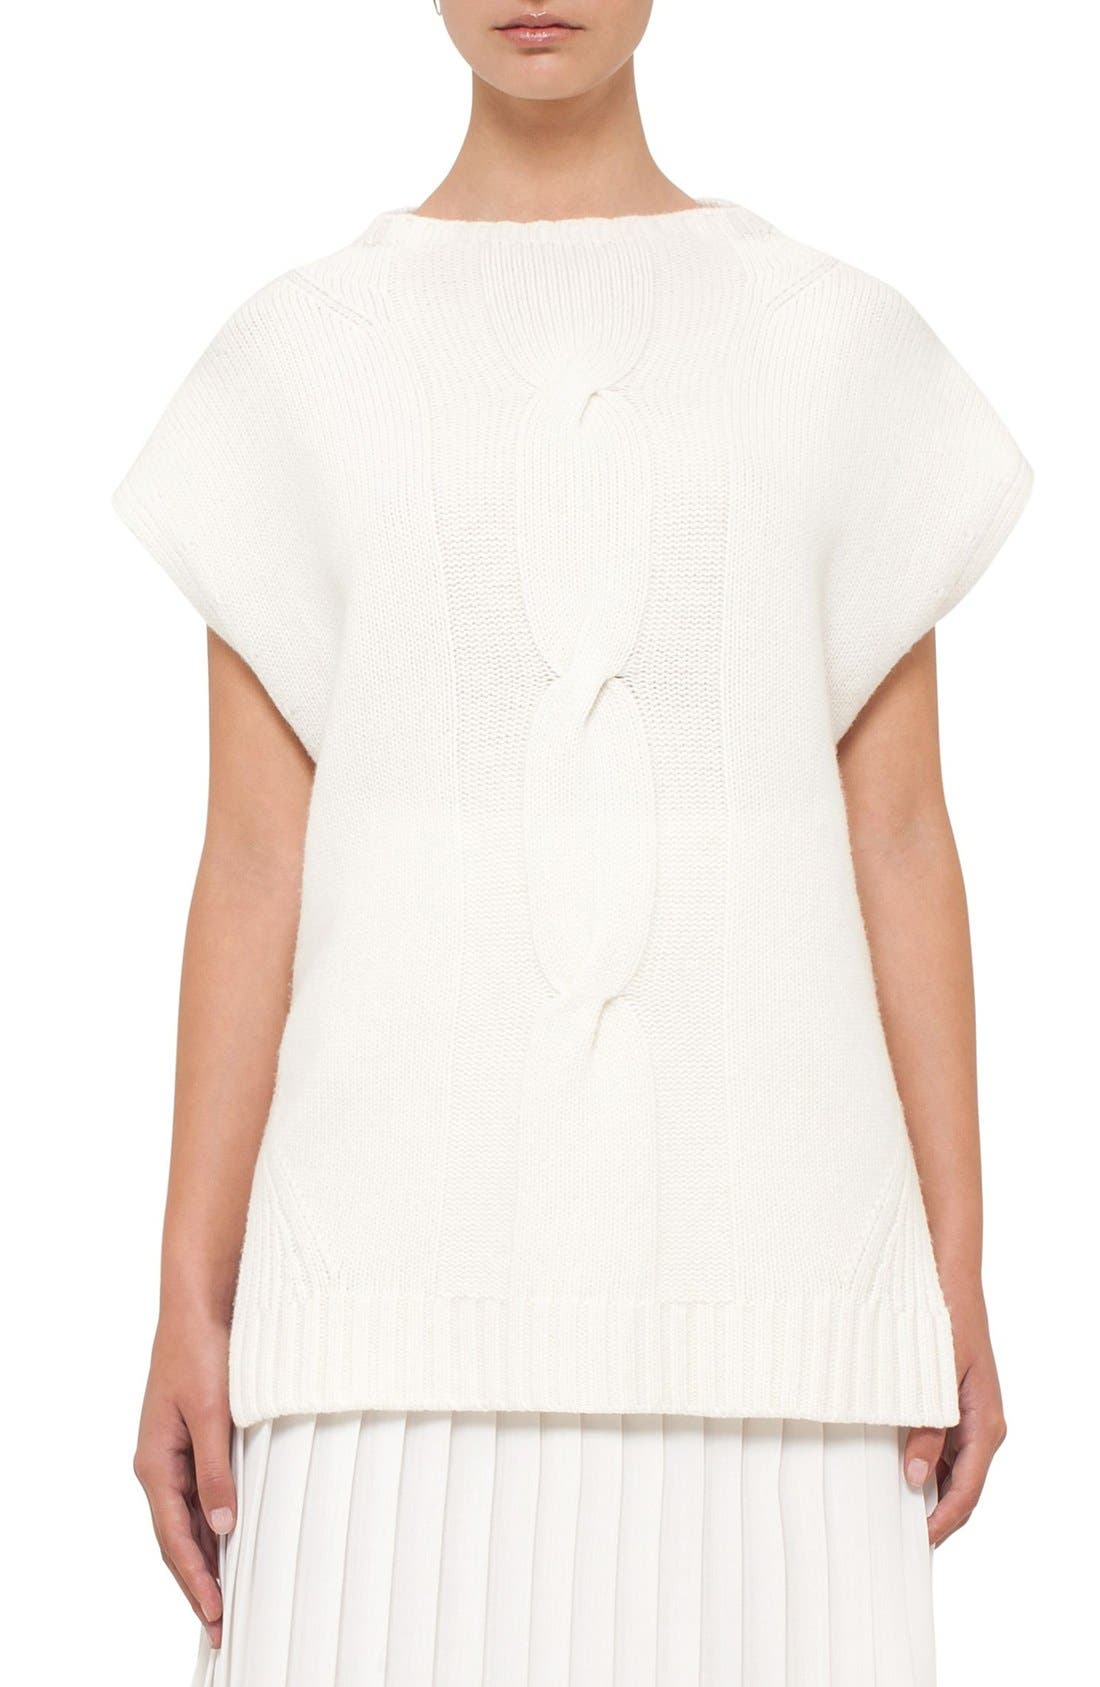 AKRIS PUNTO Wool & Cashmere Cap Sleeve Sweater